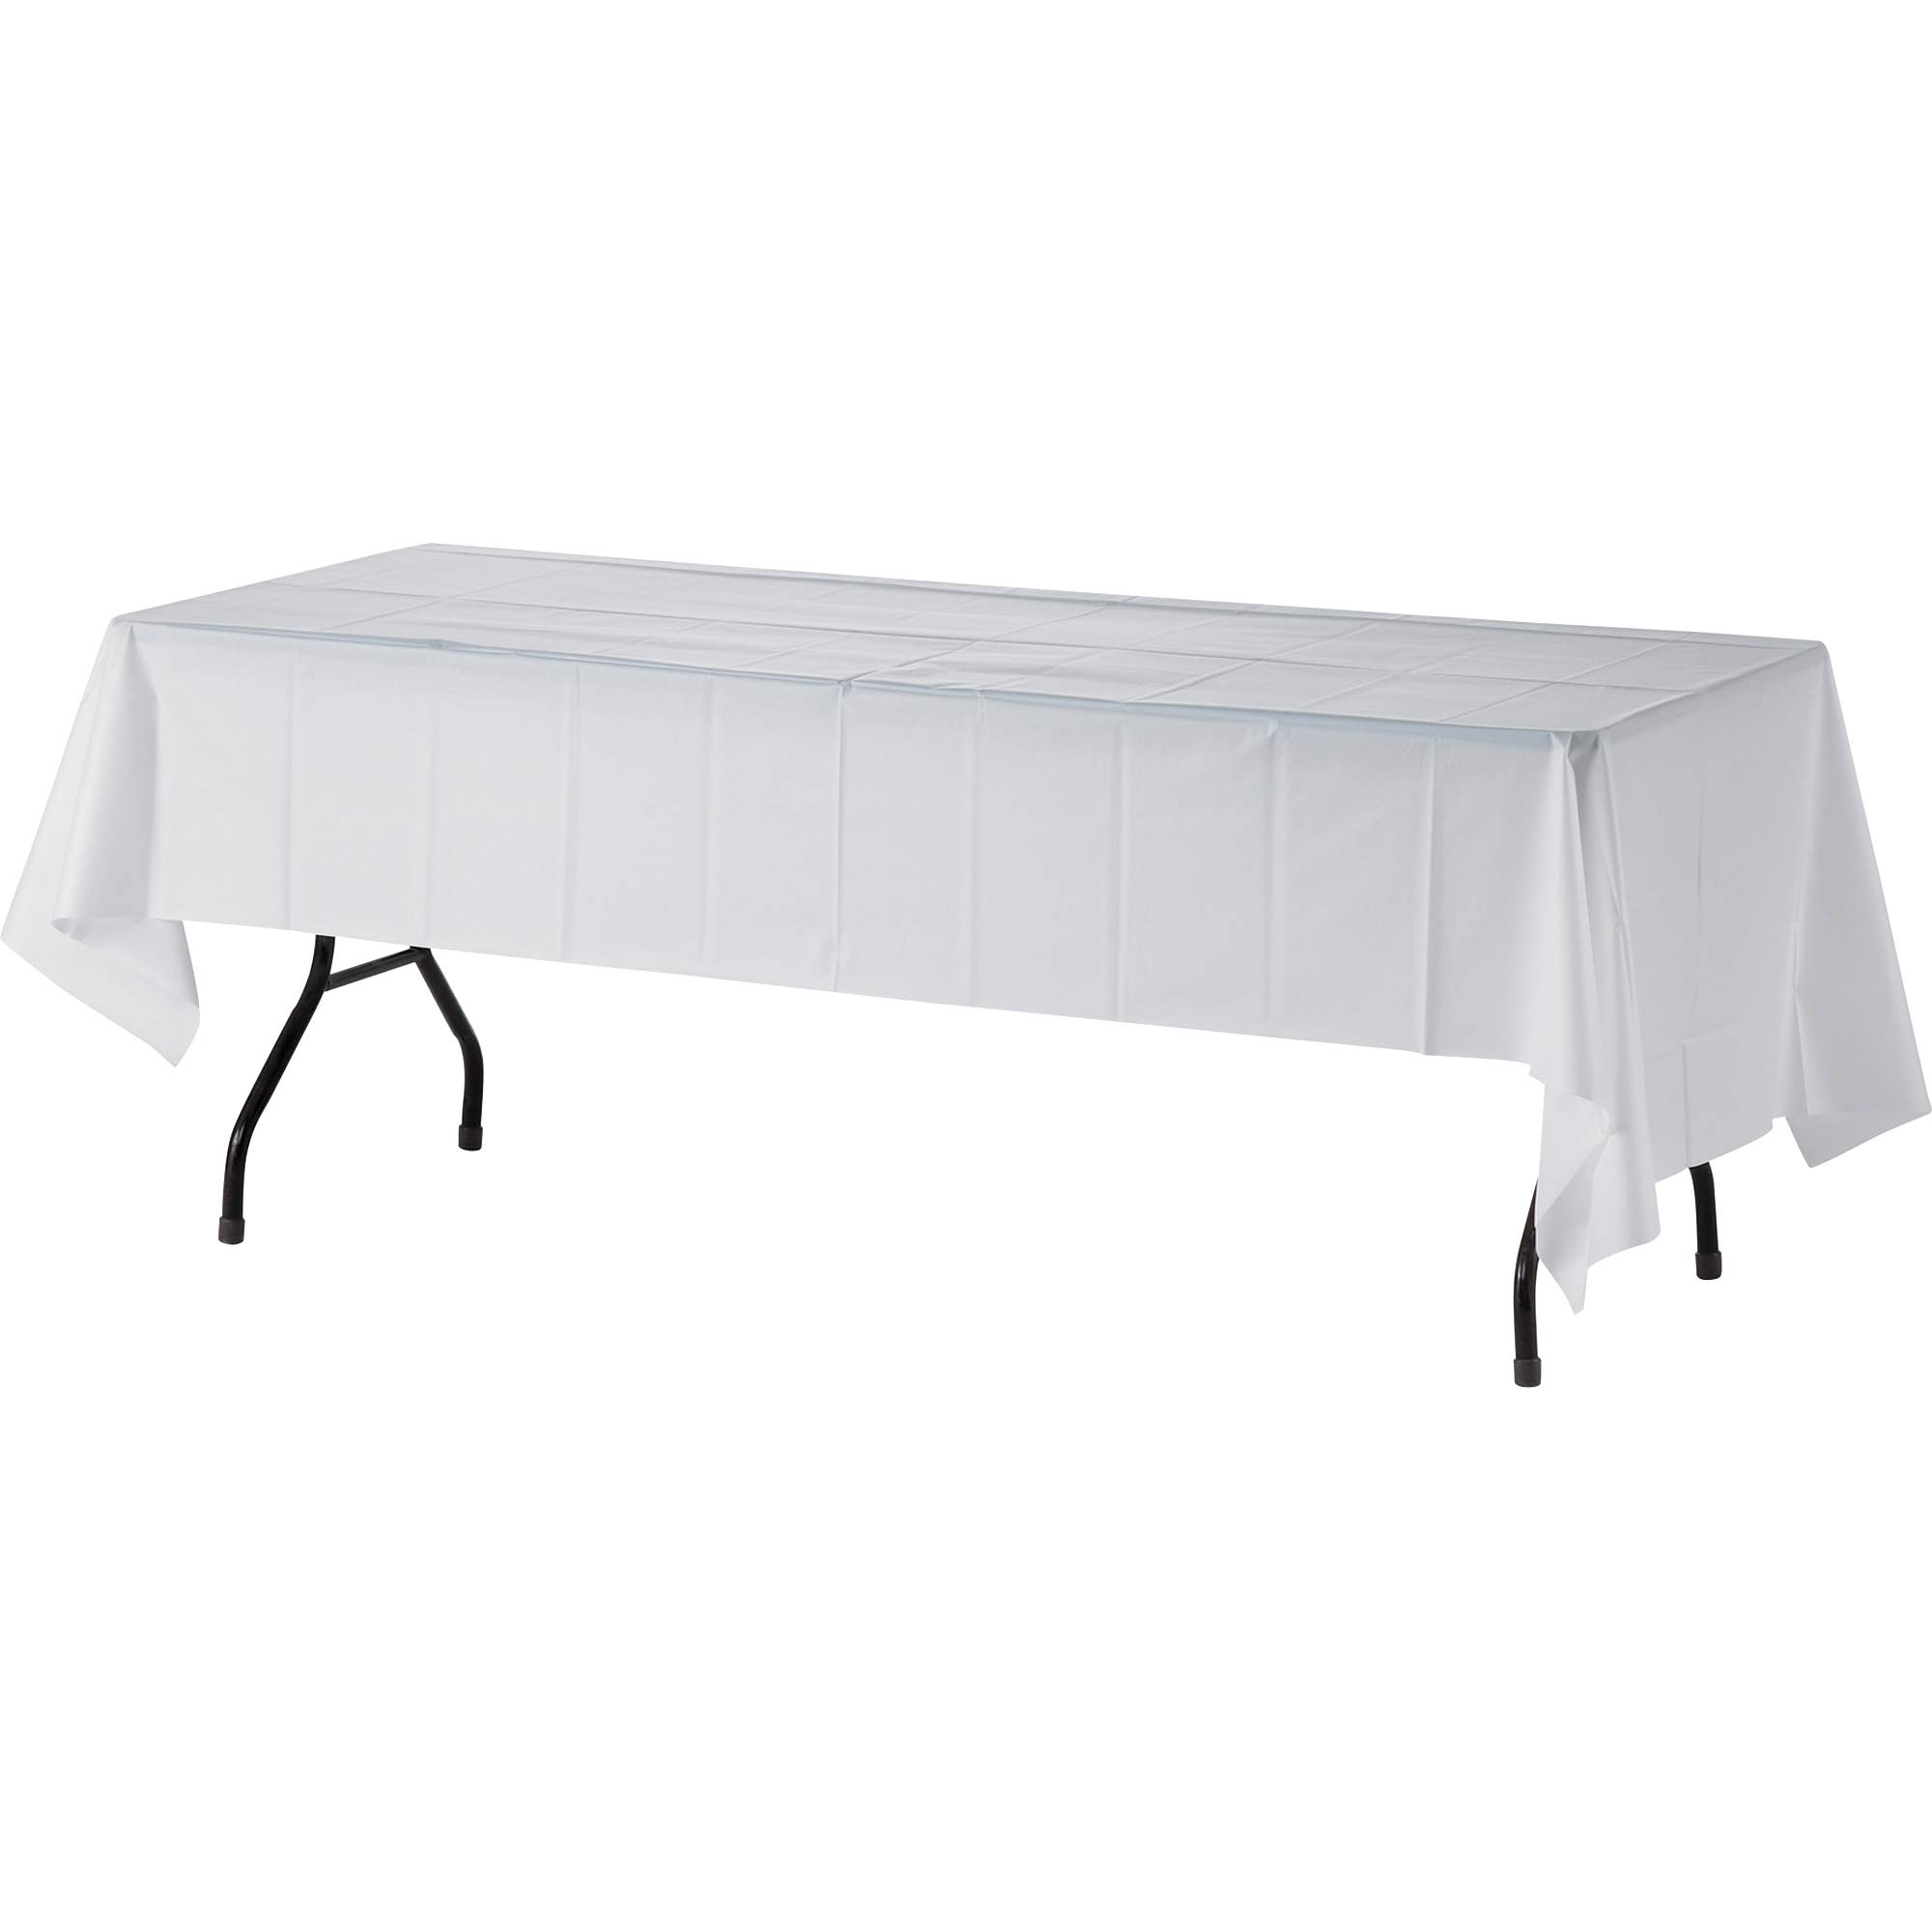 Genuine Joe 10328CT Plastic Rectangular Table Cover, 108'' x 54'', White